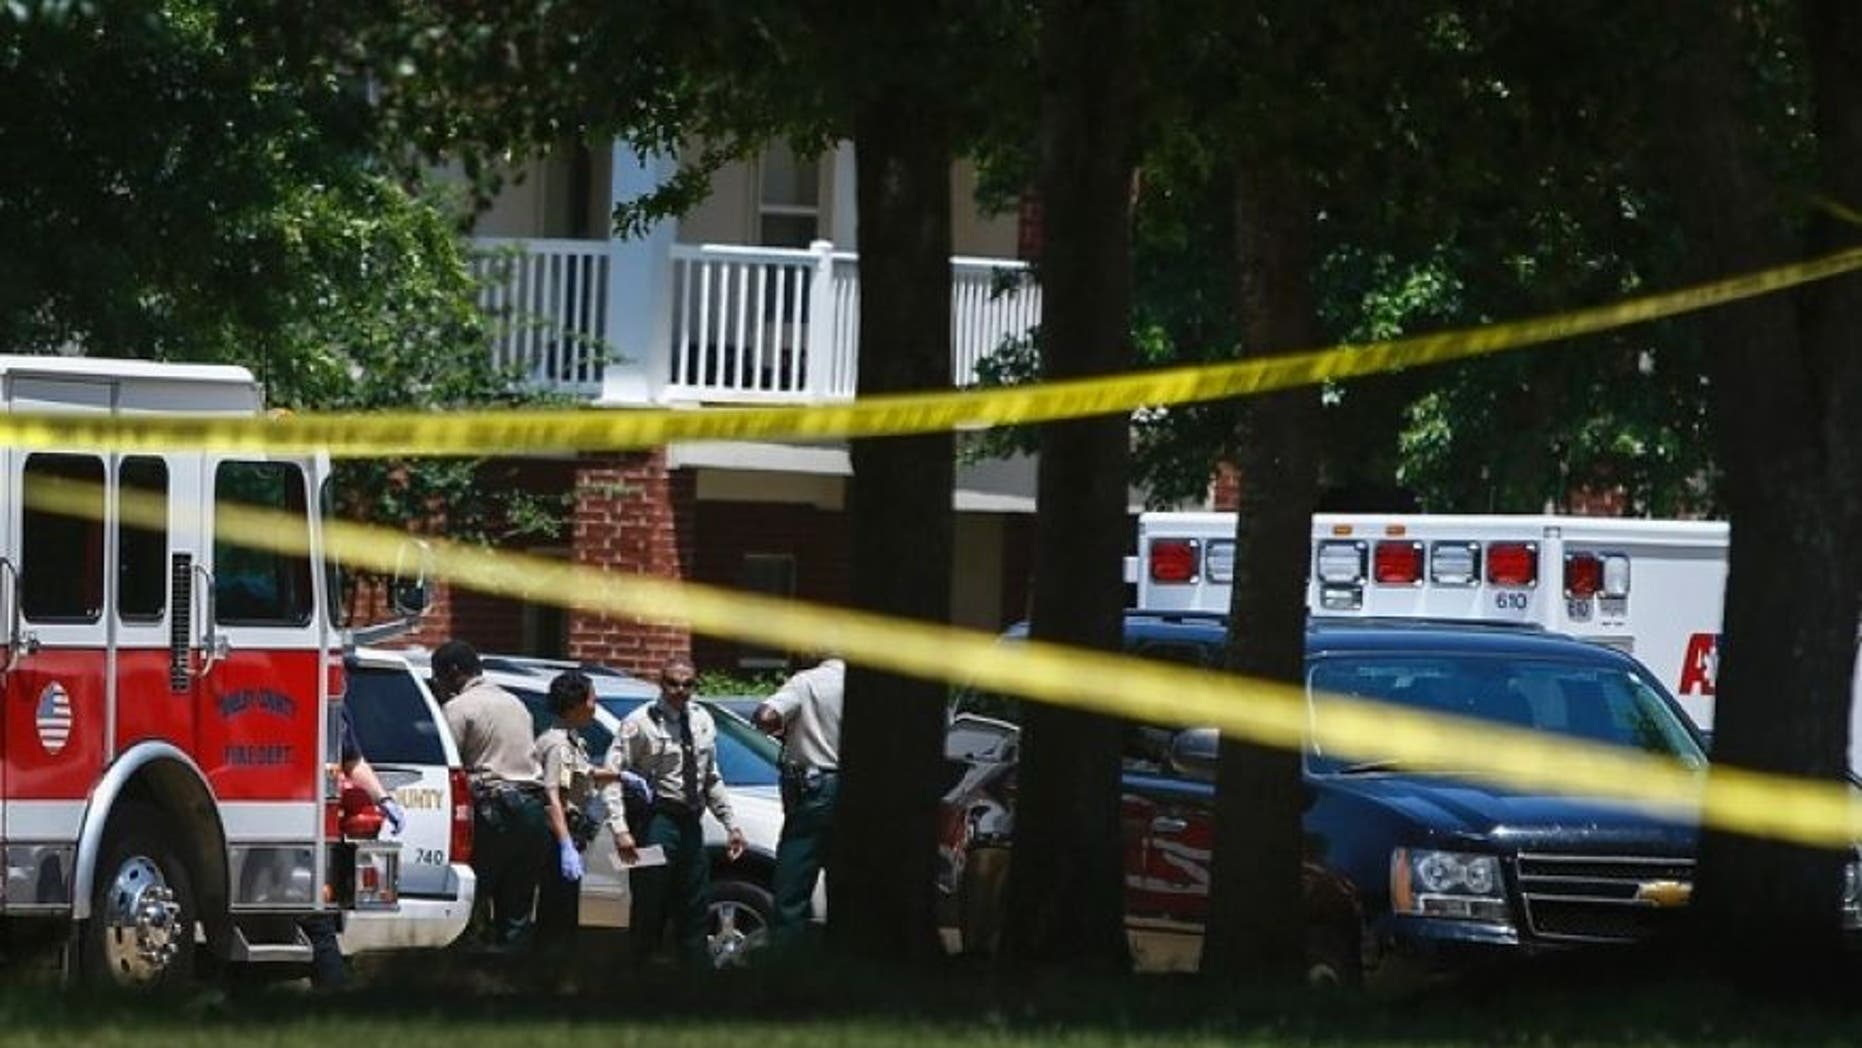 Shelby County Sheriff's deputies work the scene where four young children were fatally stabbed at the Greens of Irene apartment, Friday, July 1, 2016 in Memphis, Tenn.